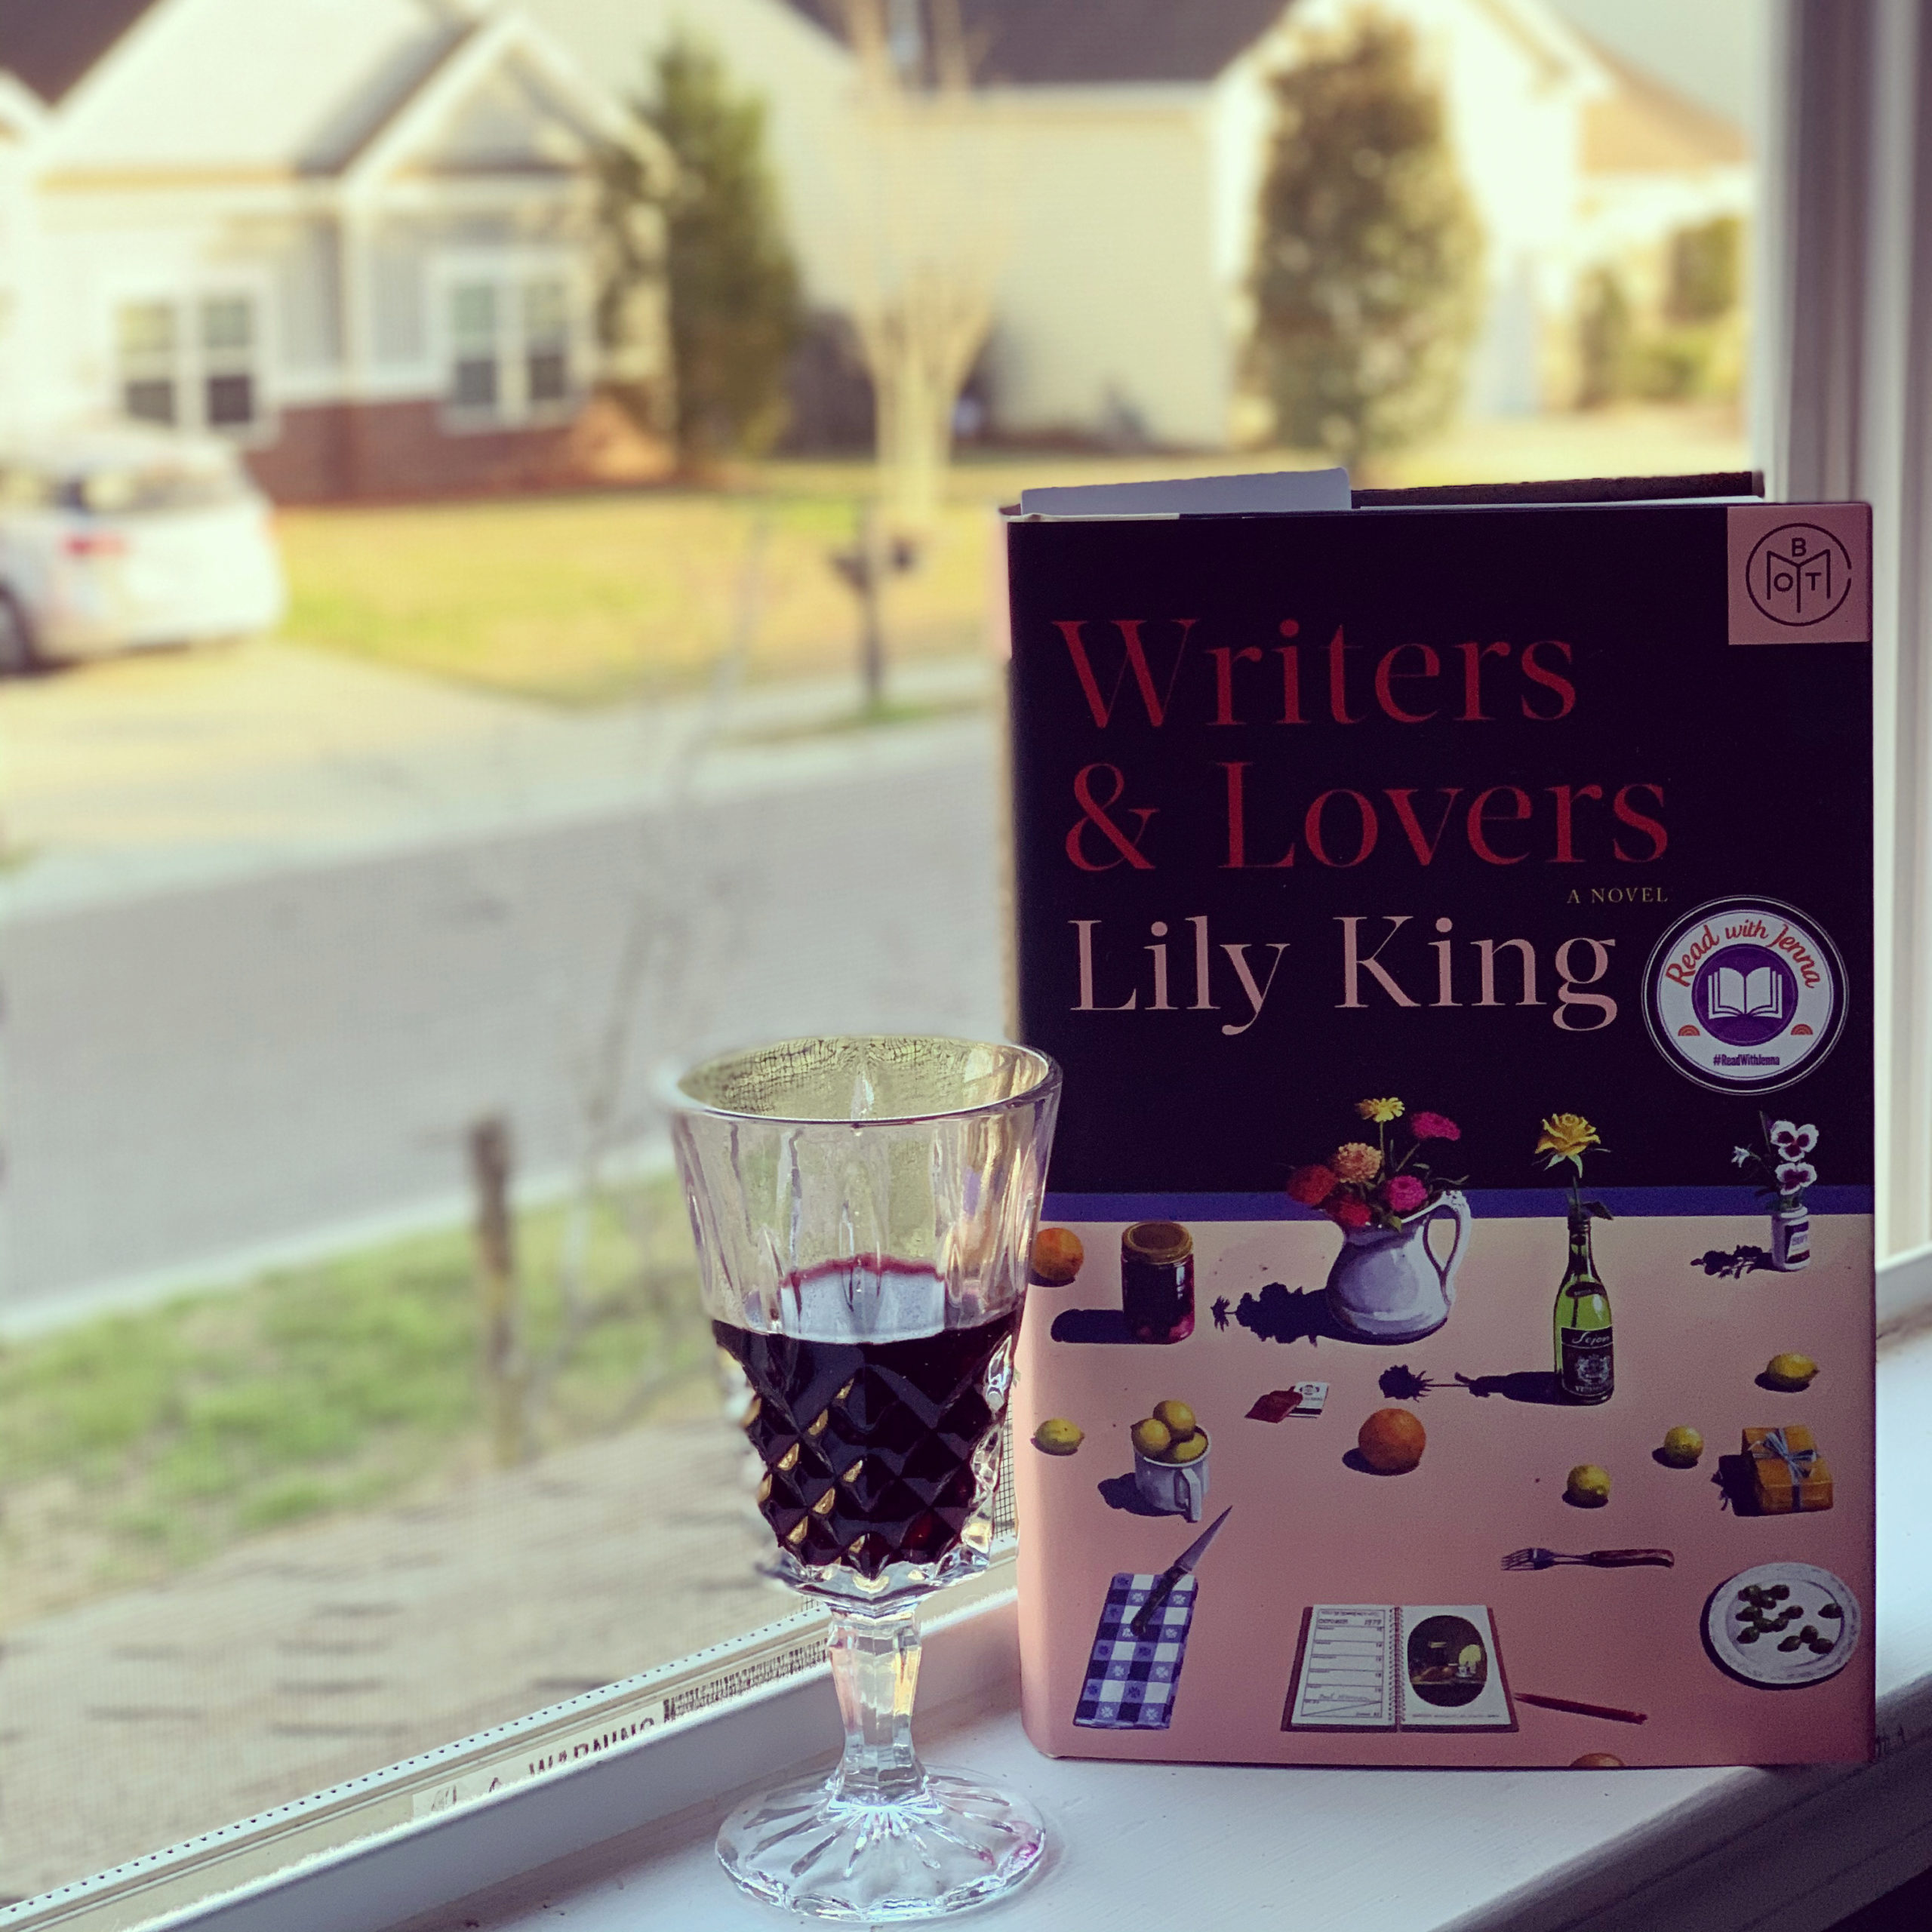 Writers & Lovers by Lily King #bookreviews #brandisbookcorner #beingfibromom